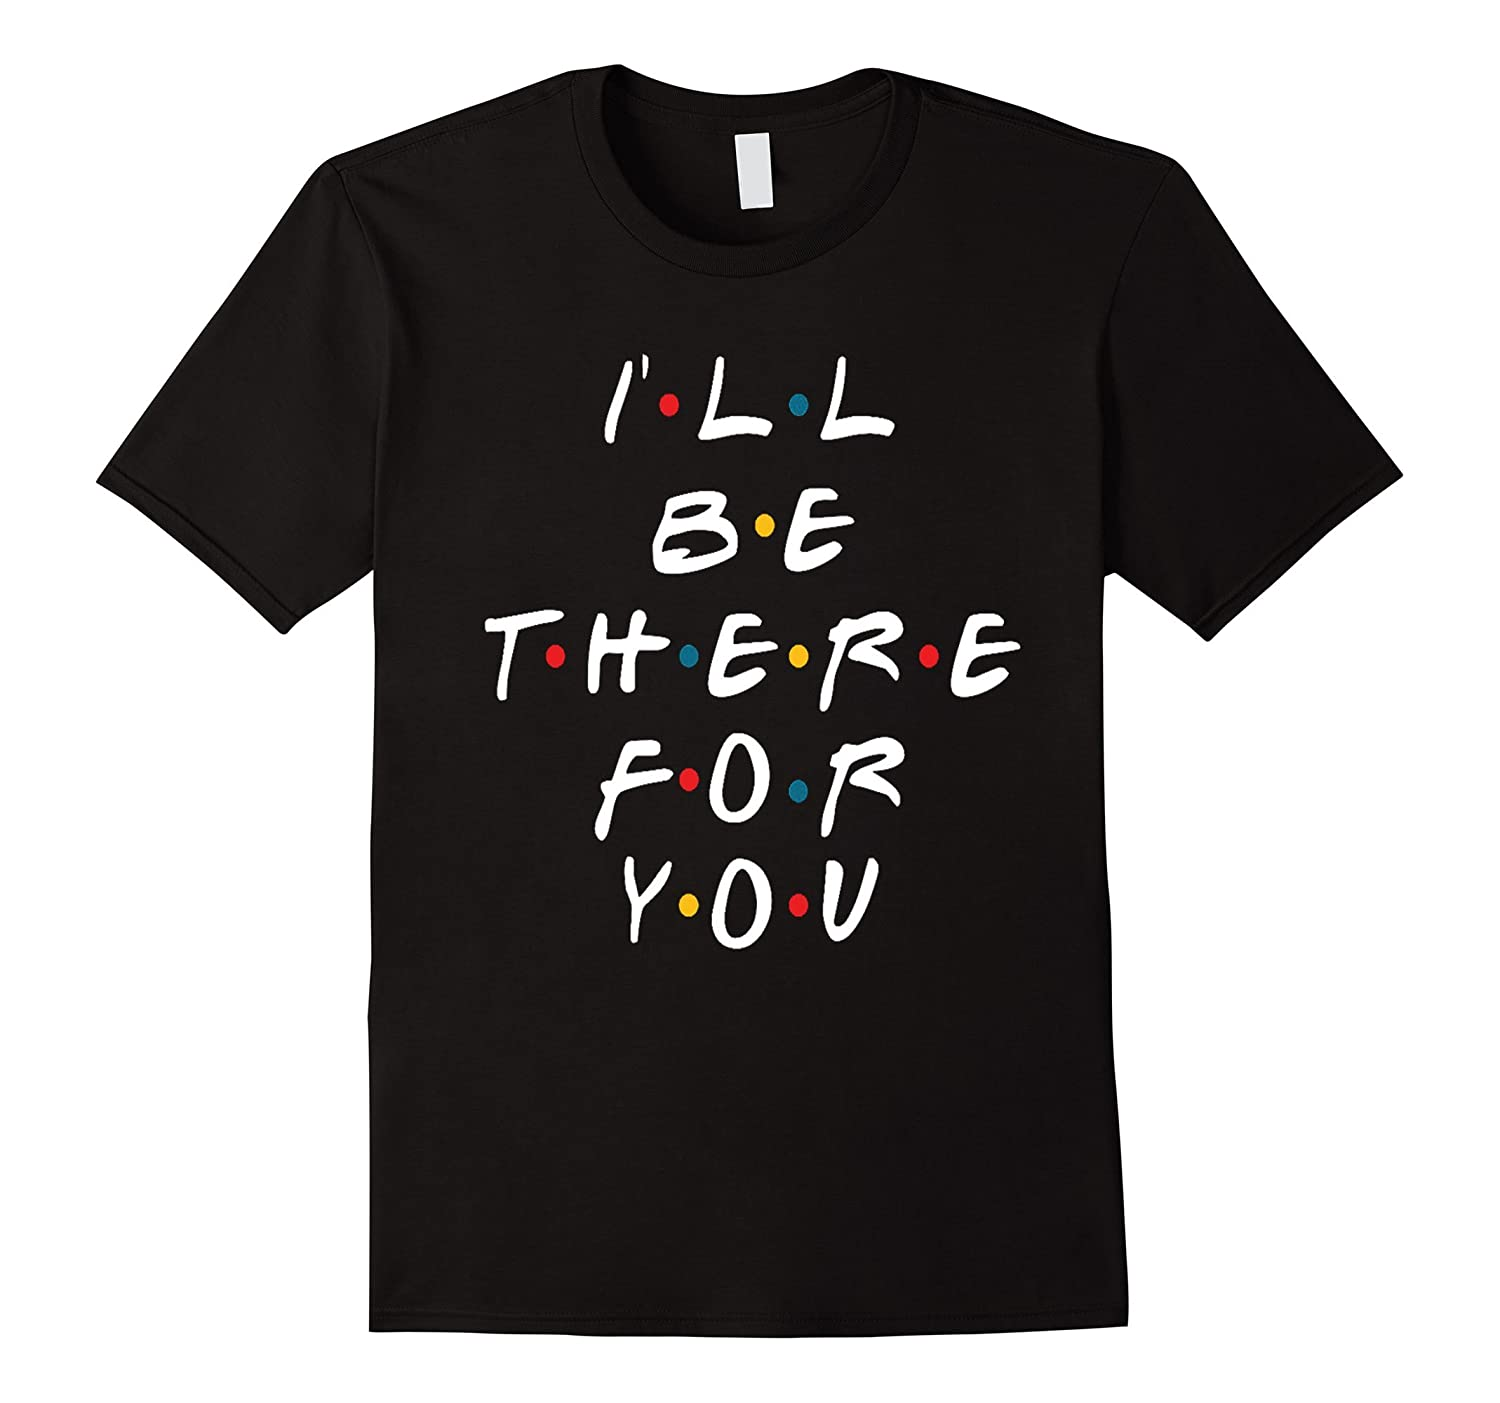 I'll be there for you friends t-shirt-TH